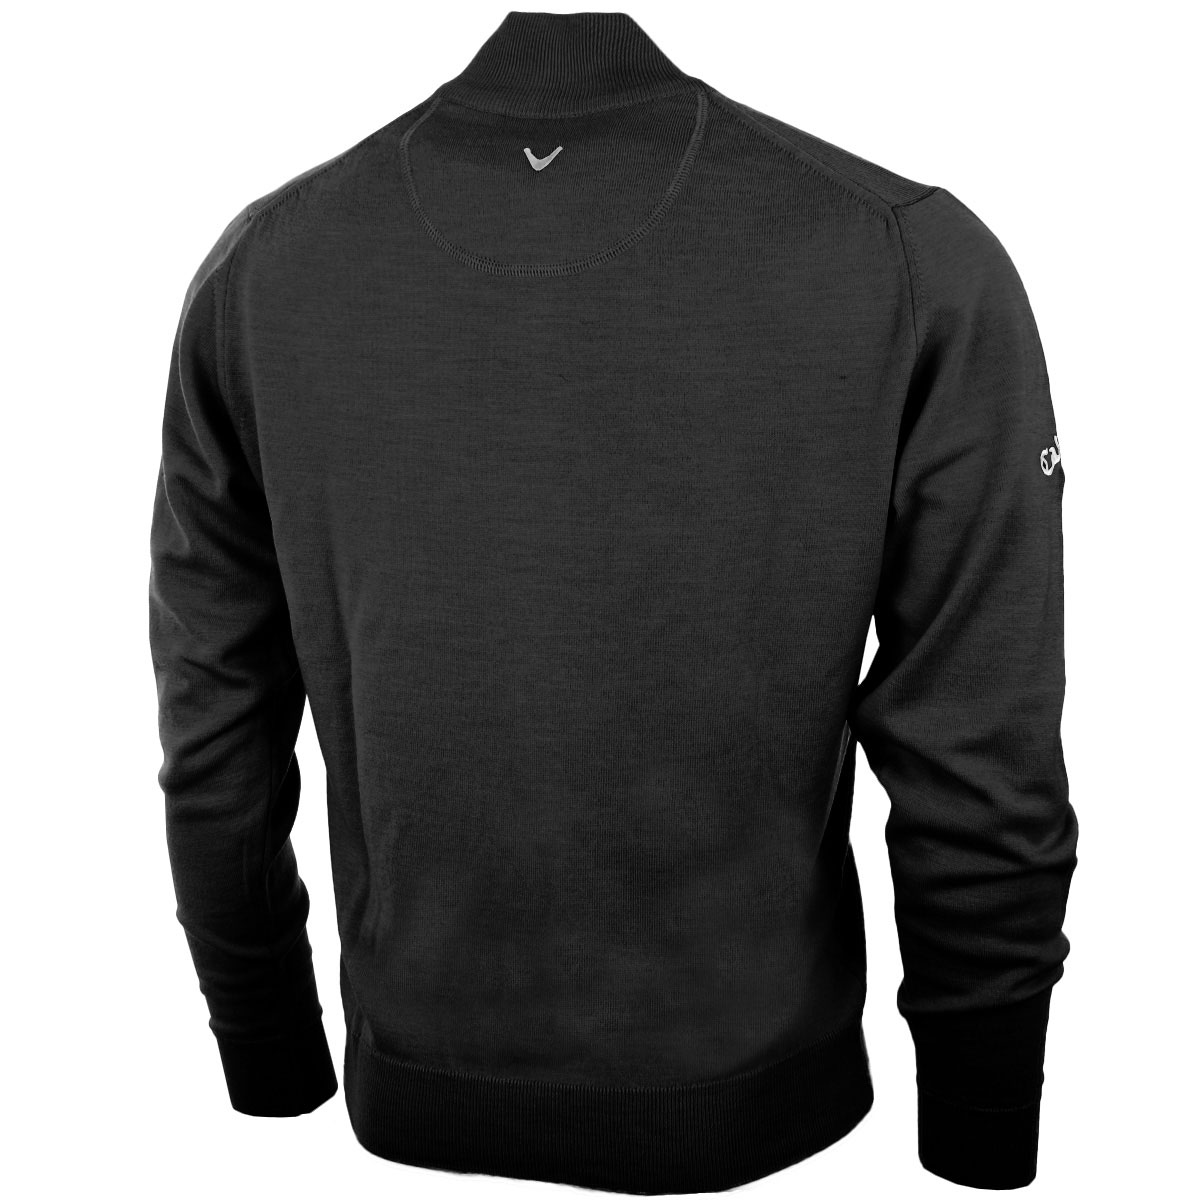 Callaway-Golf-Mens-Merino-1-4-Zip-Sweater-Wool-Pullover-Therm-Jumper-60-OFF-RRP thumbnail 6